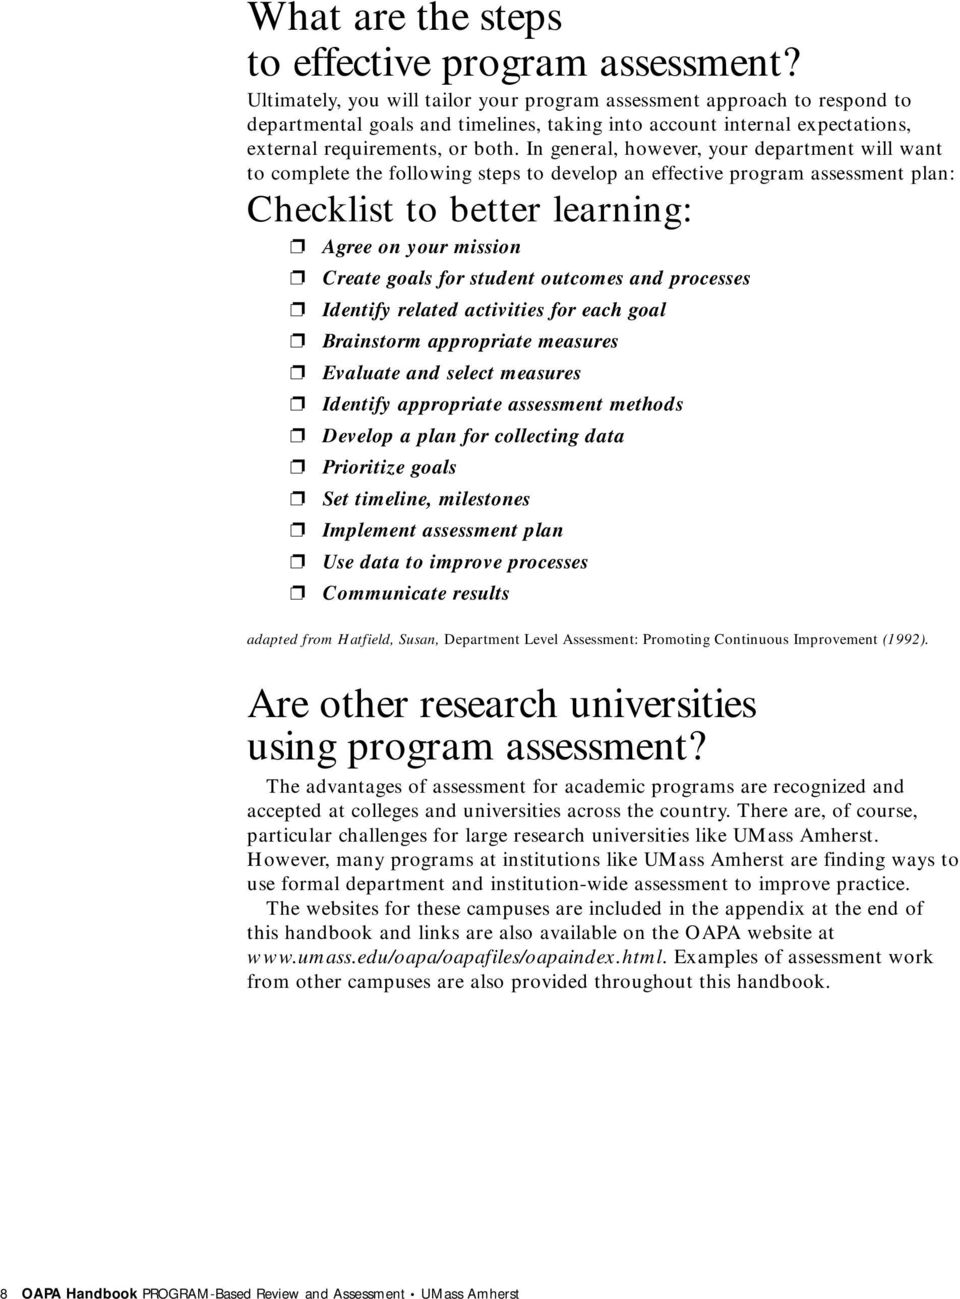 In general, however, your department will want to complete the following steps to develop an effective program assessment plan: Checklist to better learning: Agree on your mission Create goals for